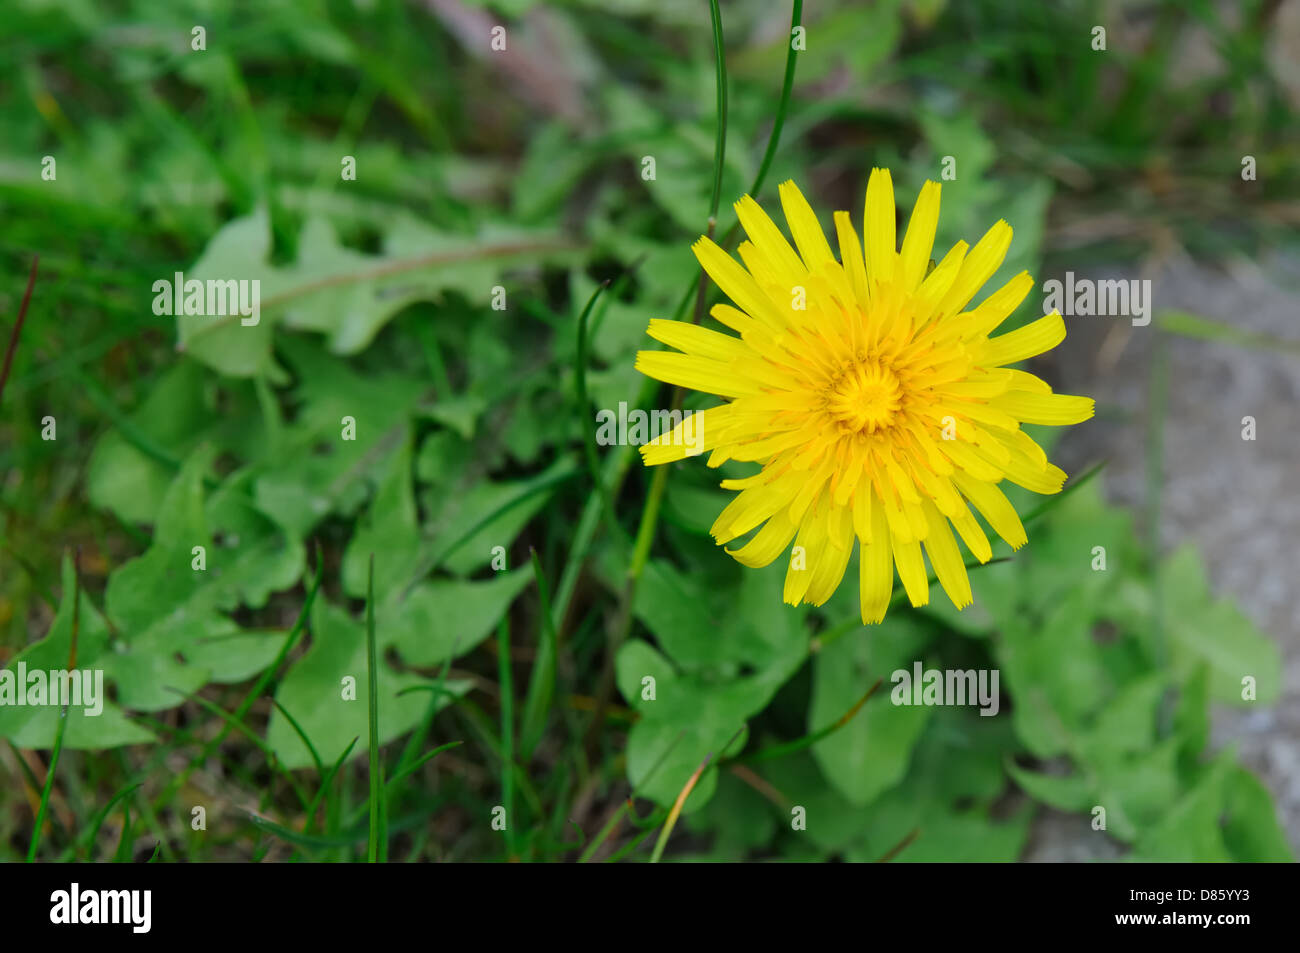 Dandelion flower and foliage on lawn - Stock Image